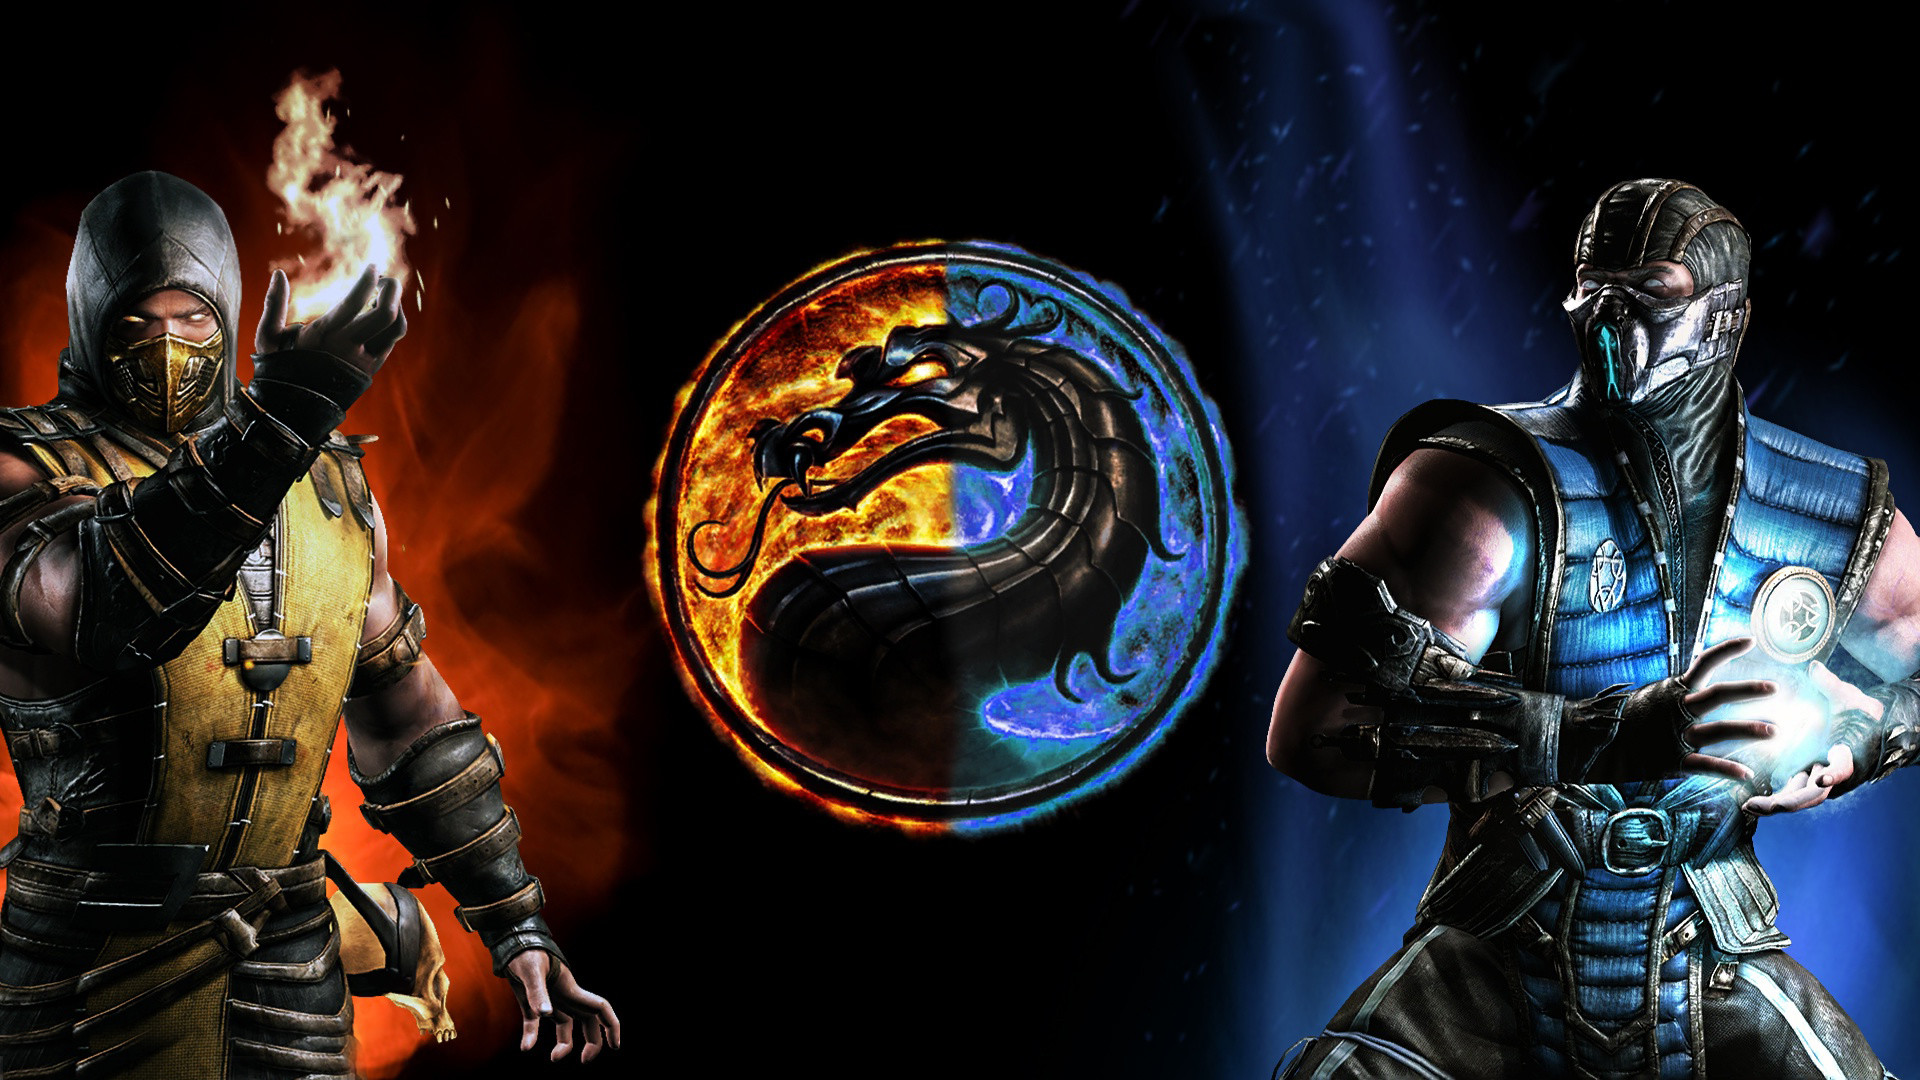 Mortal kombat scorpion vs sub zero wallpaper wallpapertag - Mortal kombat scorpion wallpaper ...